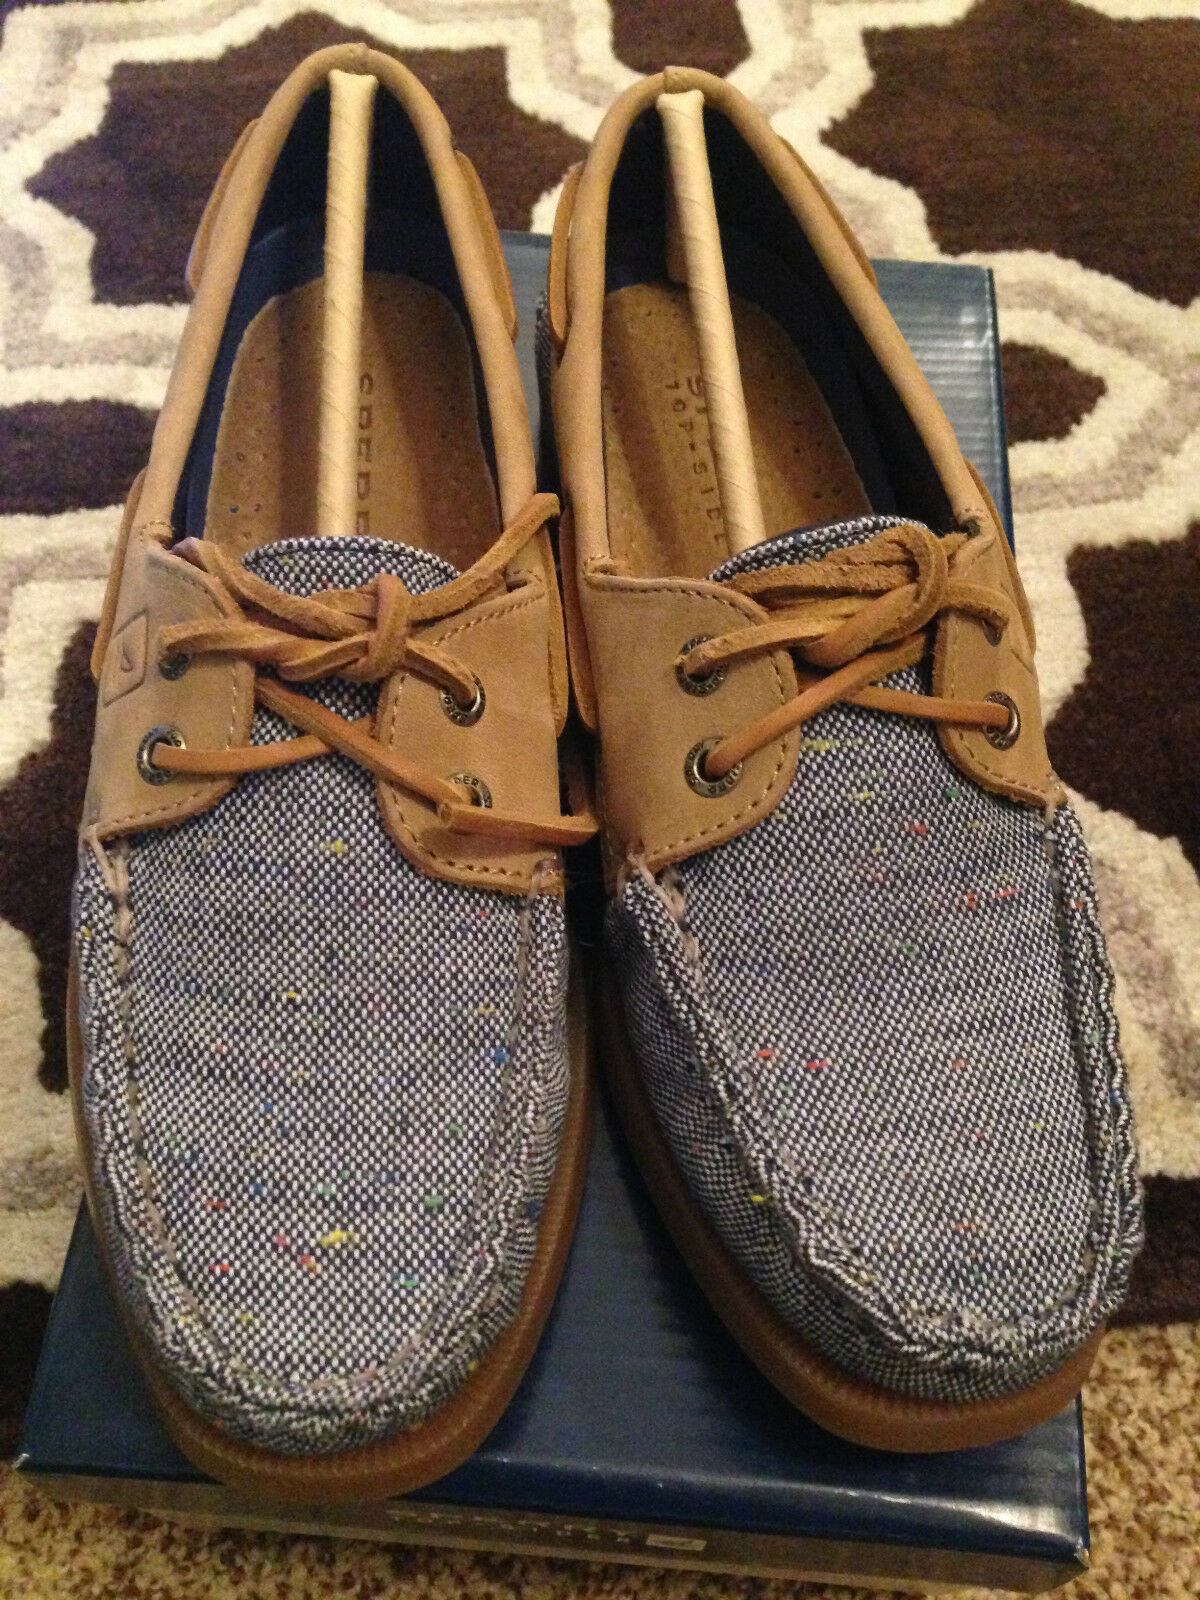 Sperry Authentic Original Fleck Canvas 2-Eye Boat shoes 6.5M